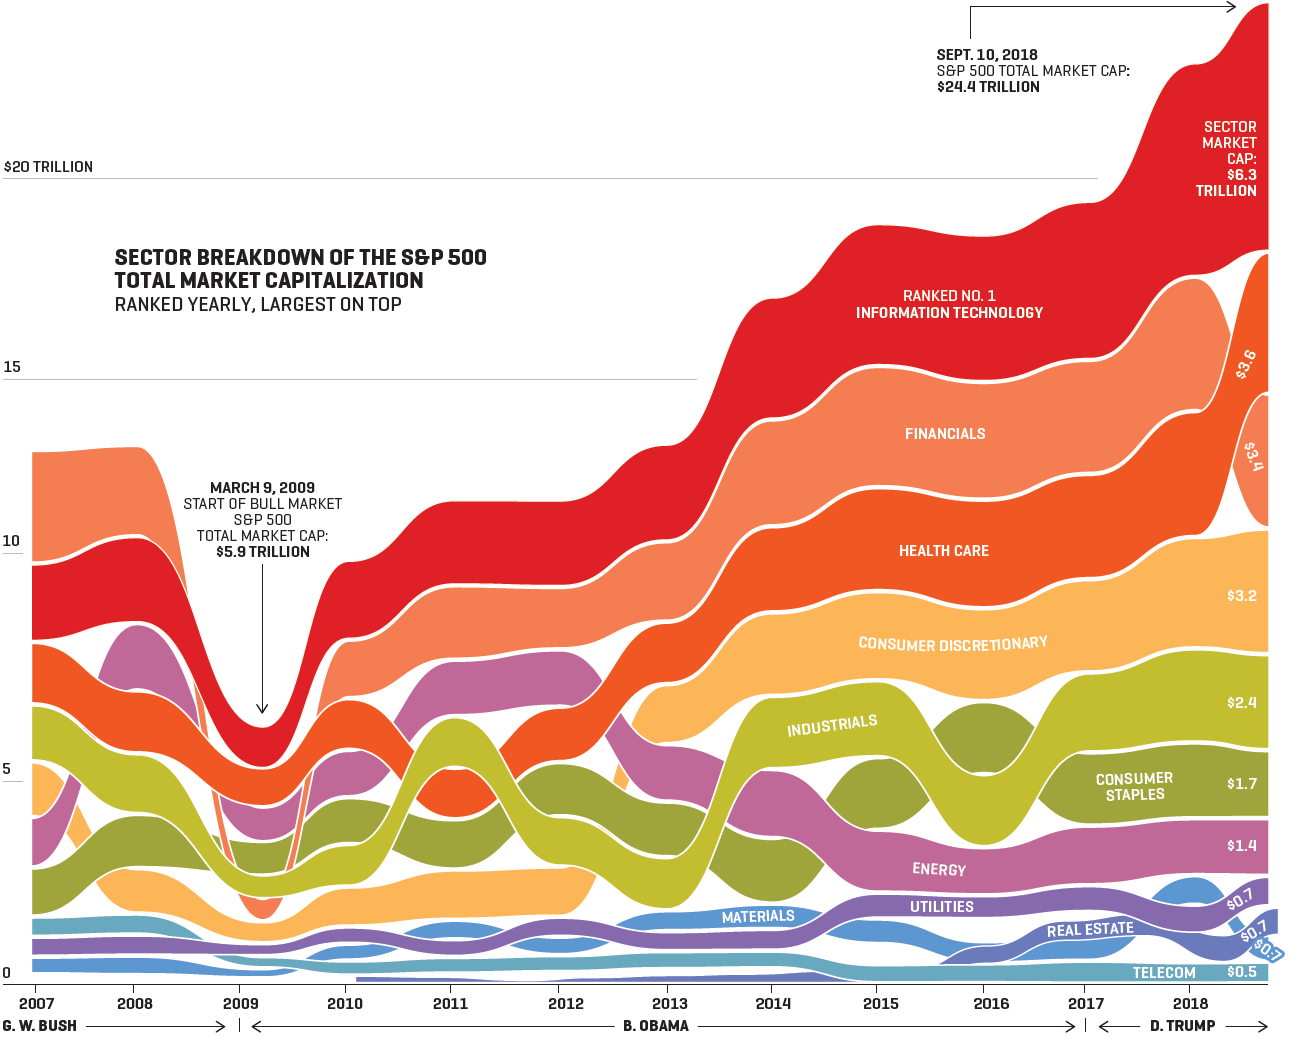 CHART SHOWS SECTOR BREAKDOWN OF THE S&P 500 SINCE 2007